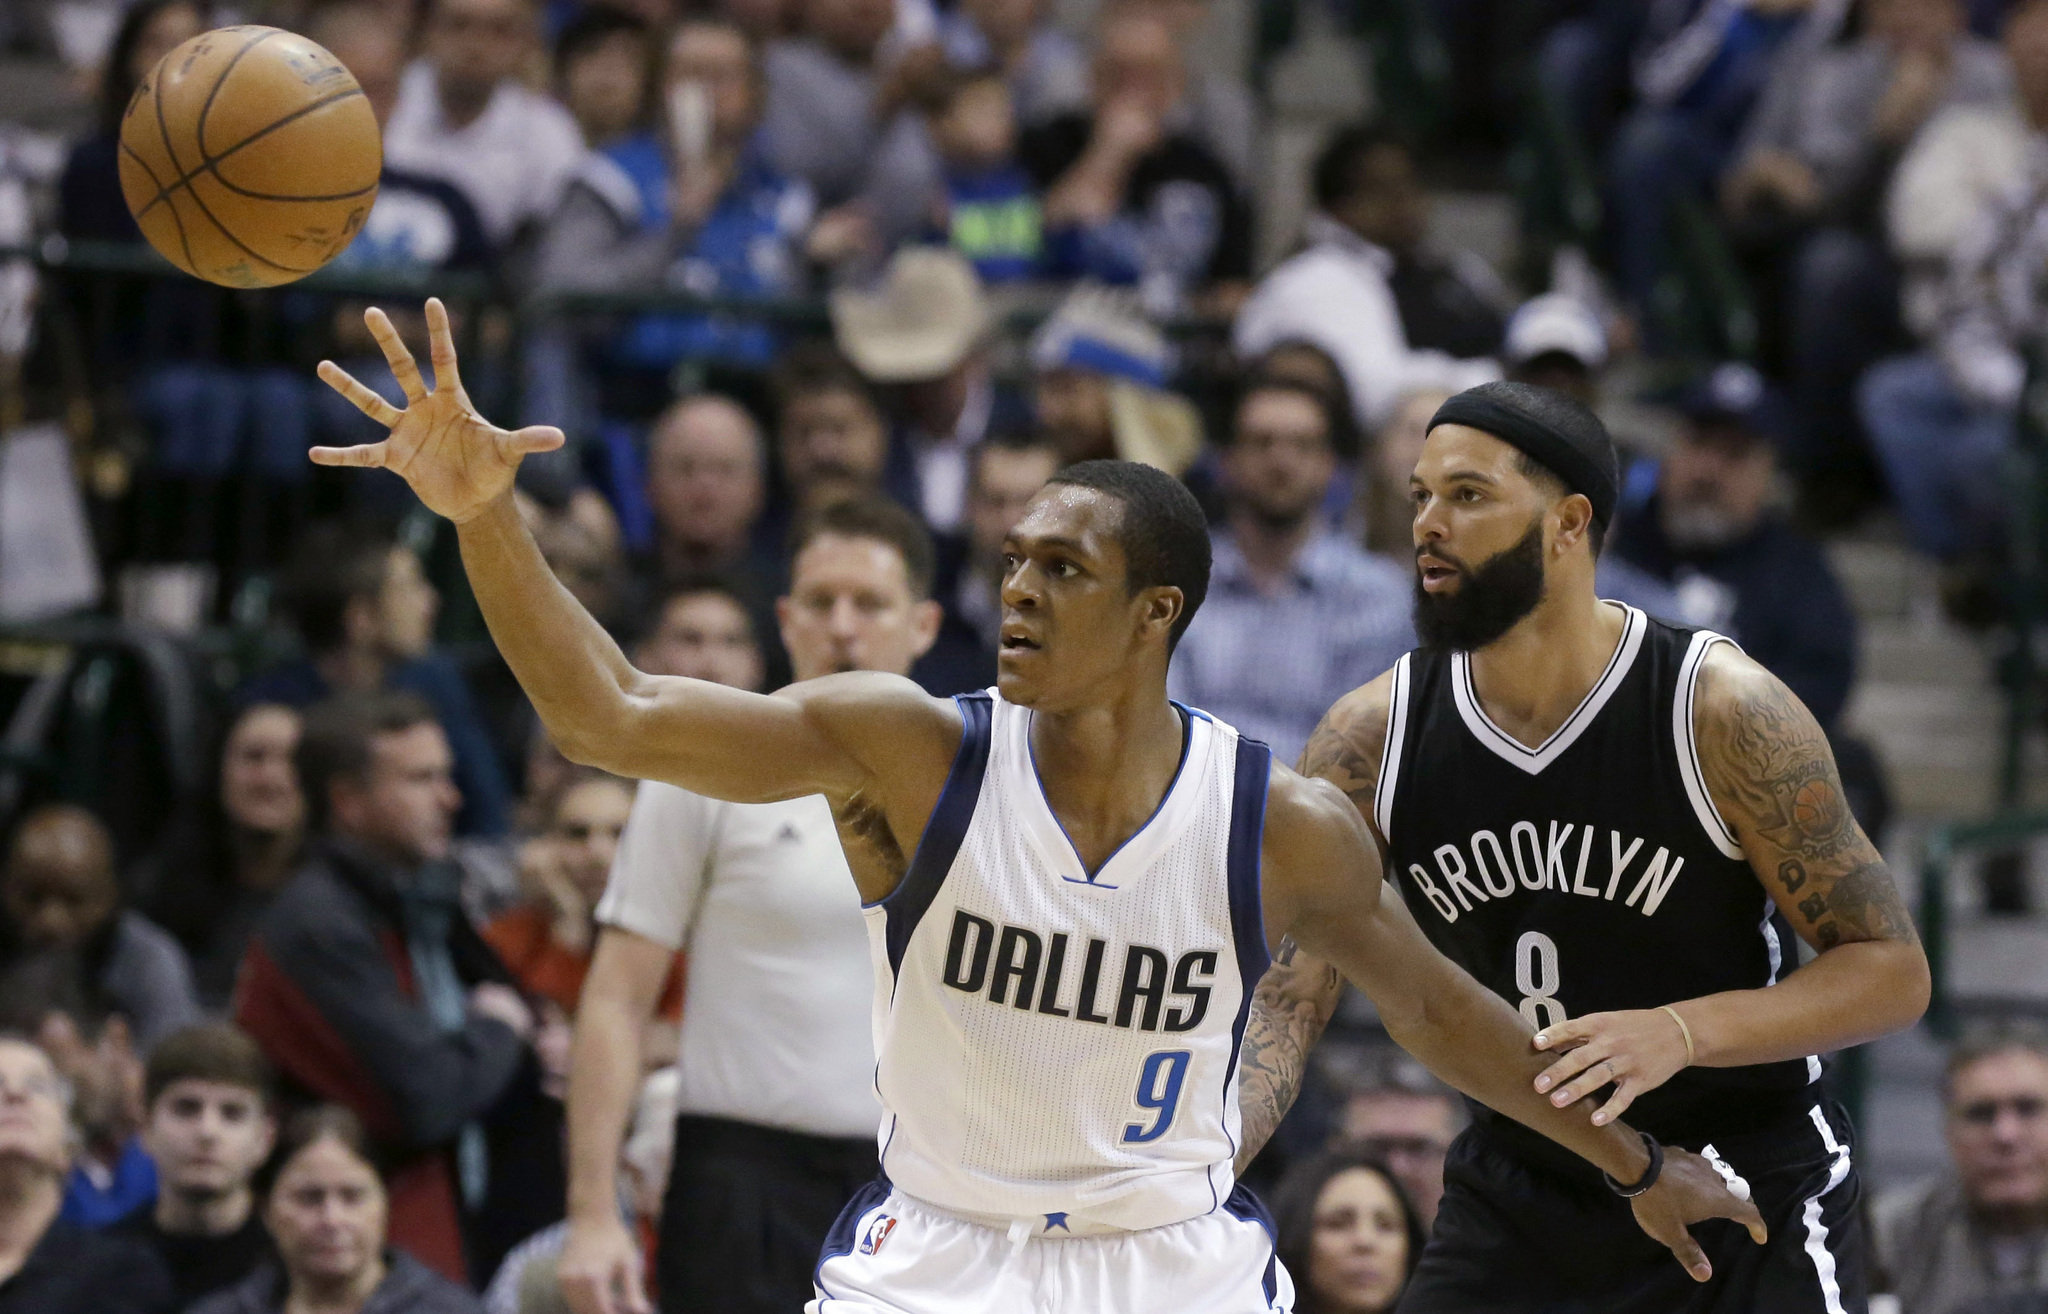 NBA Free Agency rumors: Deron Williams talking buyout with Nets to join Dallas Mavericks?